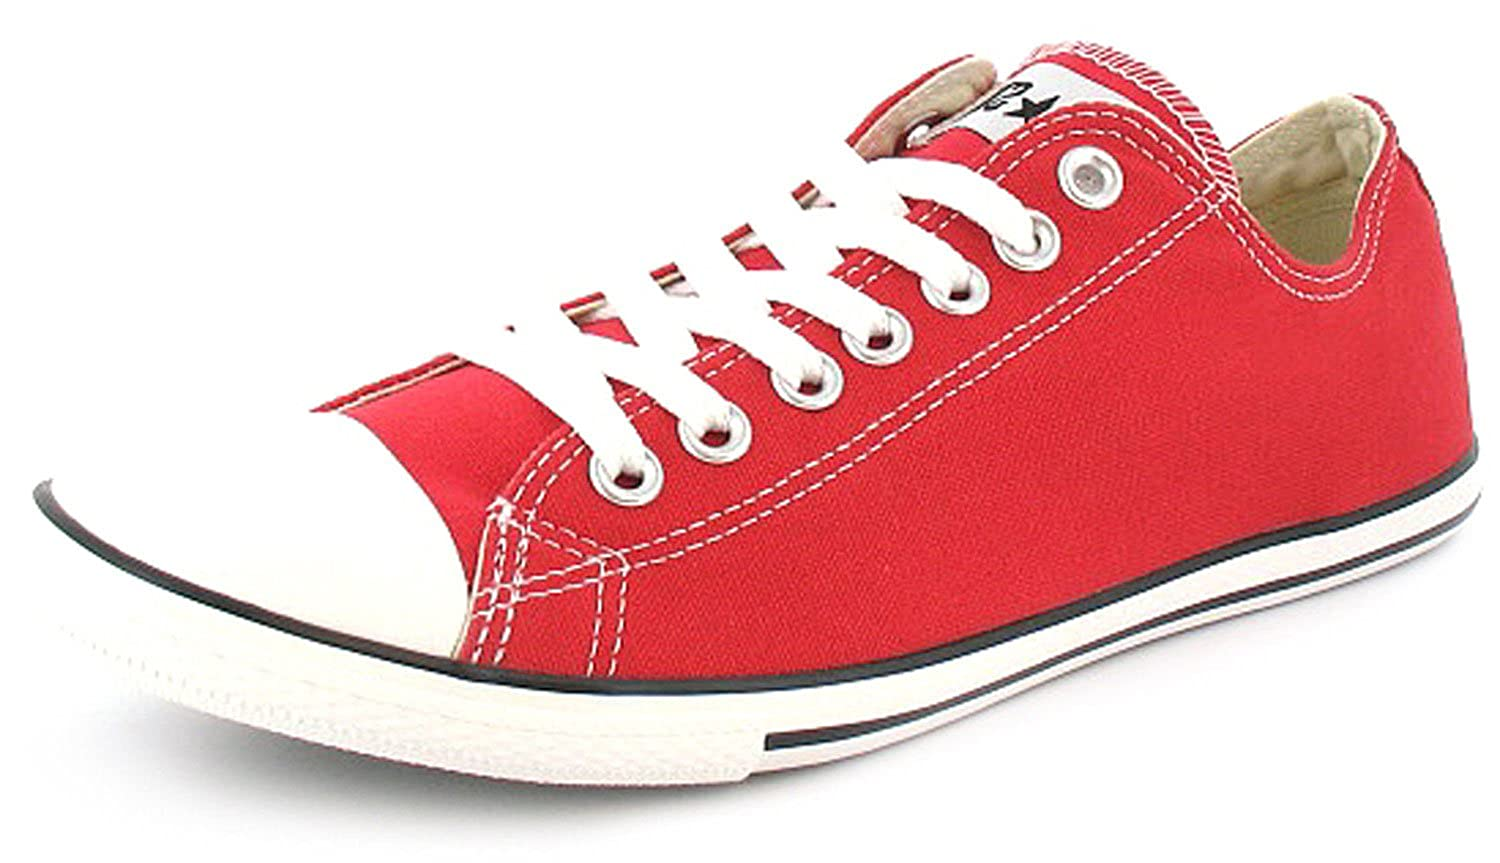 2f21d046a17e Unisex Red Converse Low Cut Chuck Taylor All Star Slim Plimsoles - Red - UK  SIZE 11  Amazon.co.uk  Shoes   Bags